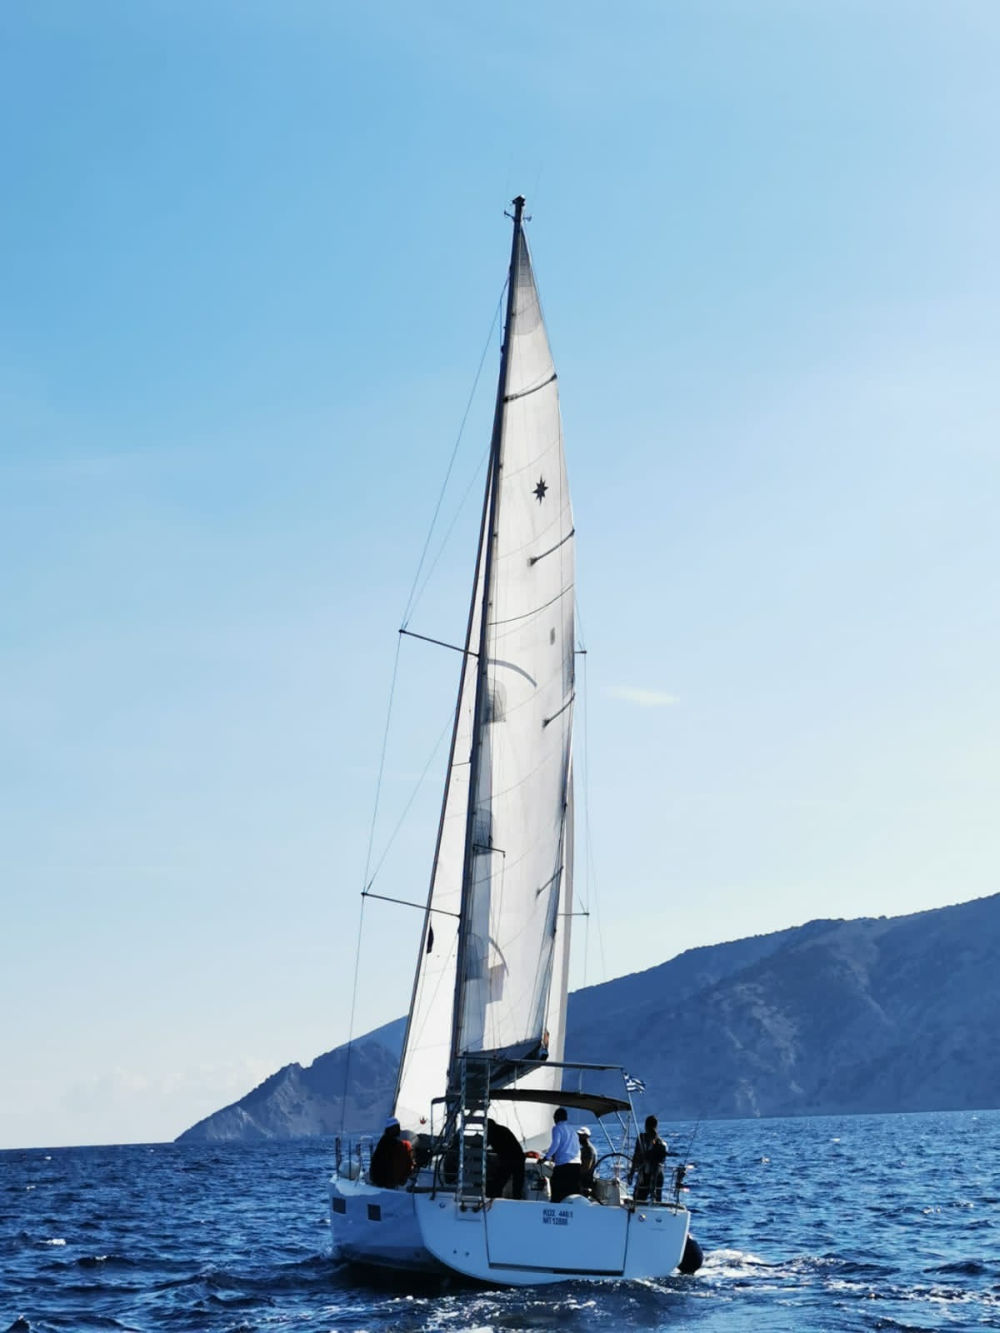 Gone Sailing by Mojo Yachting Club